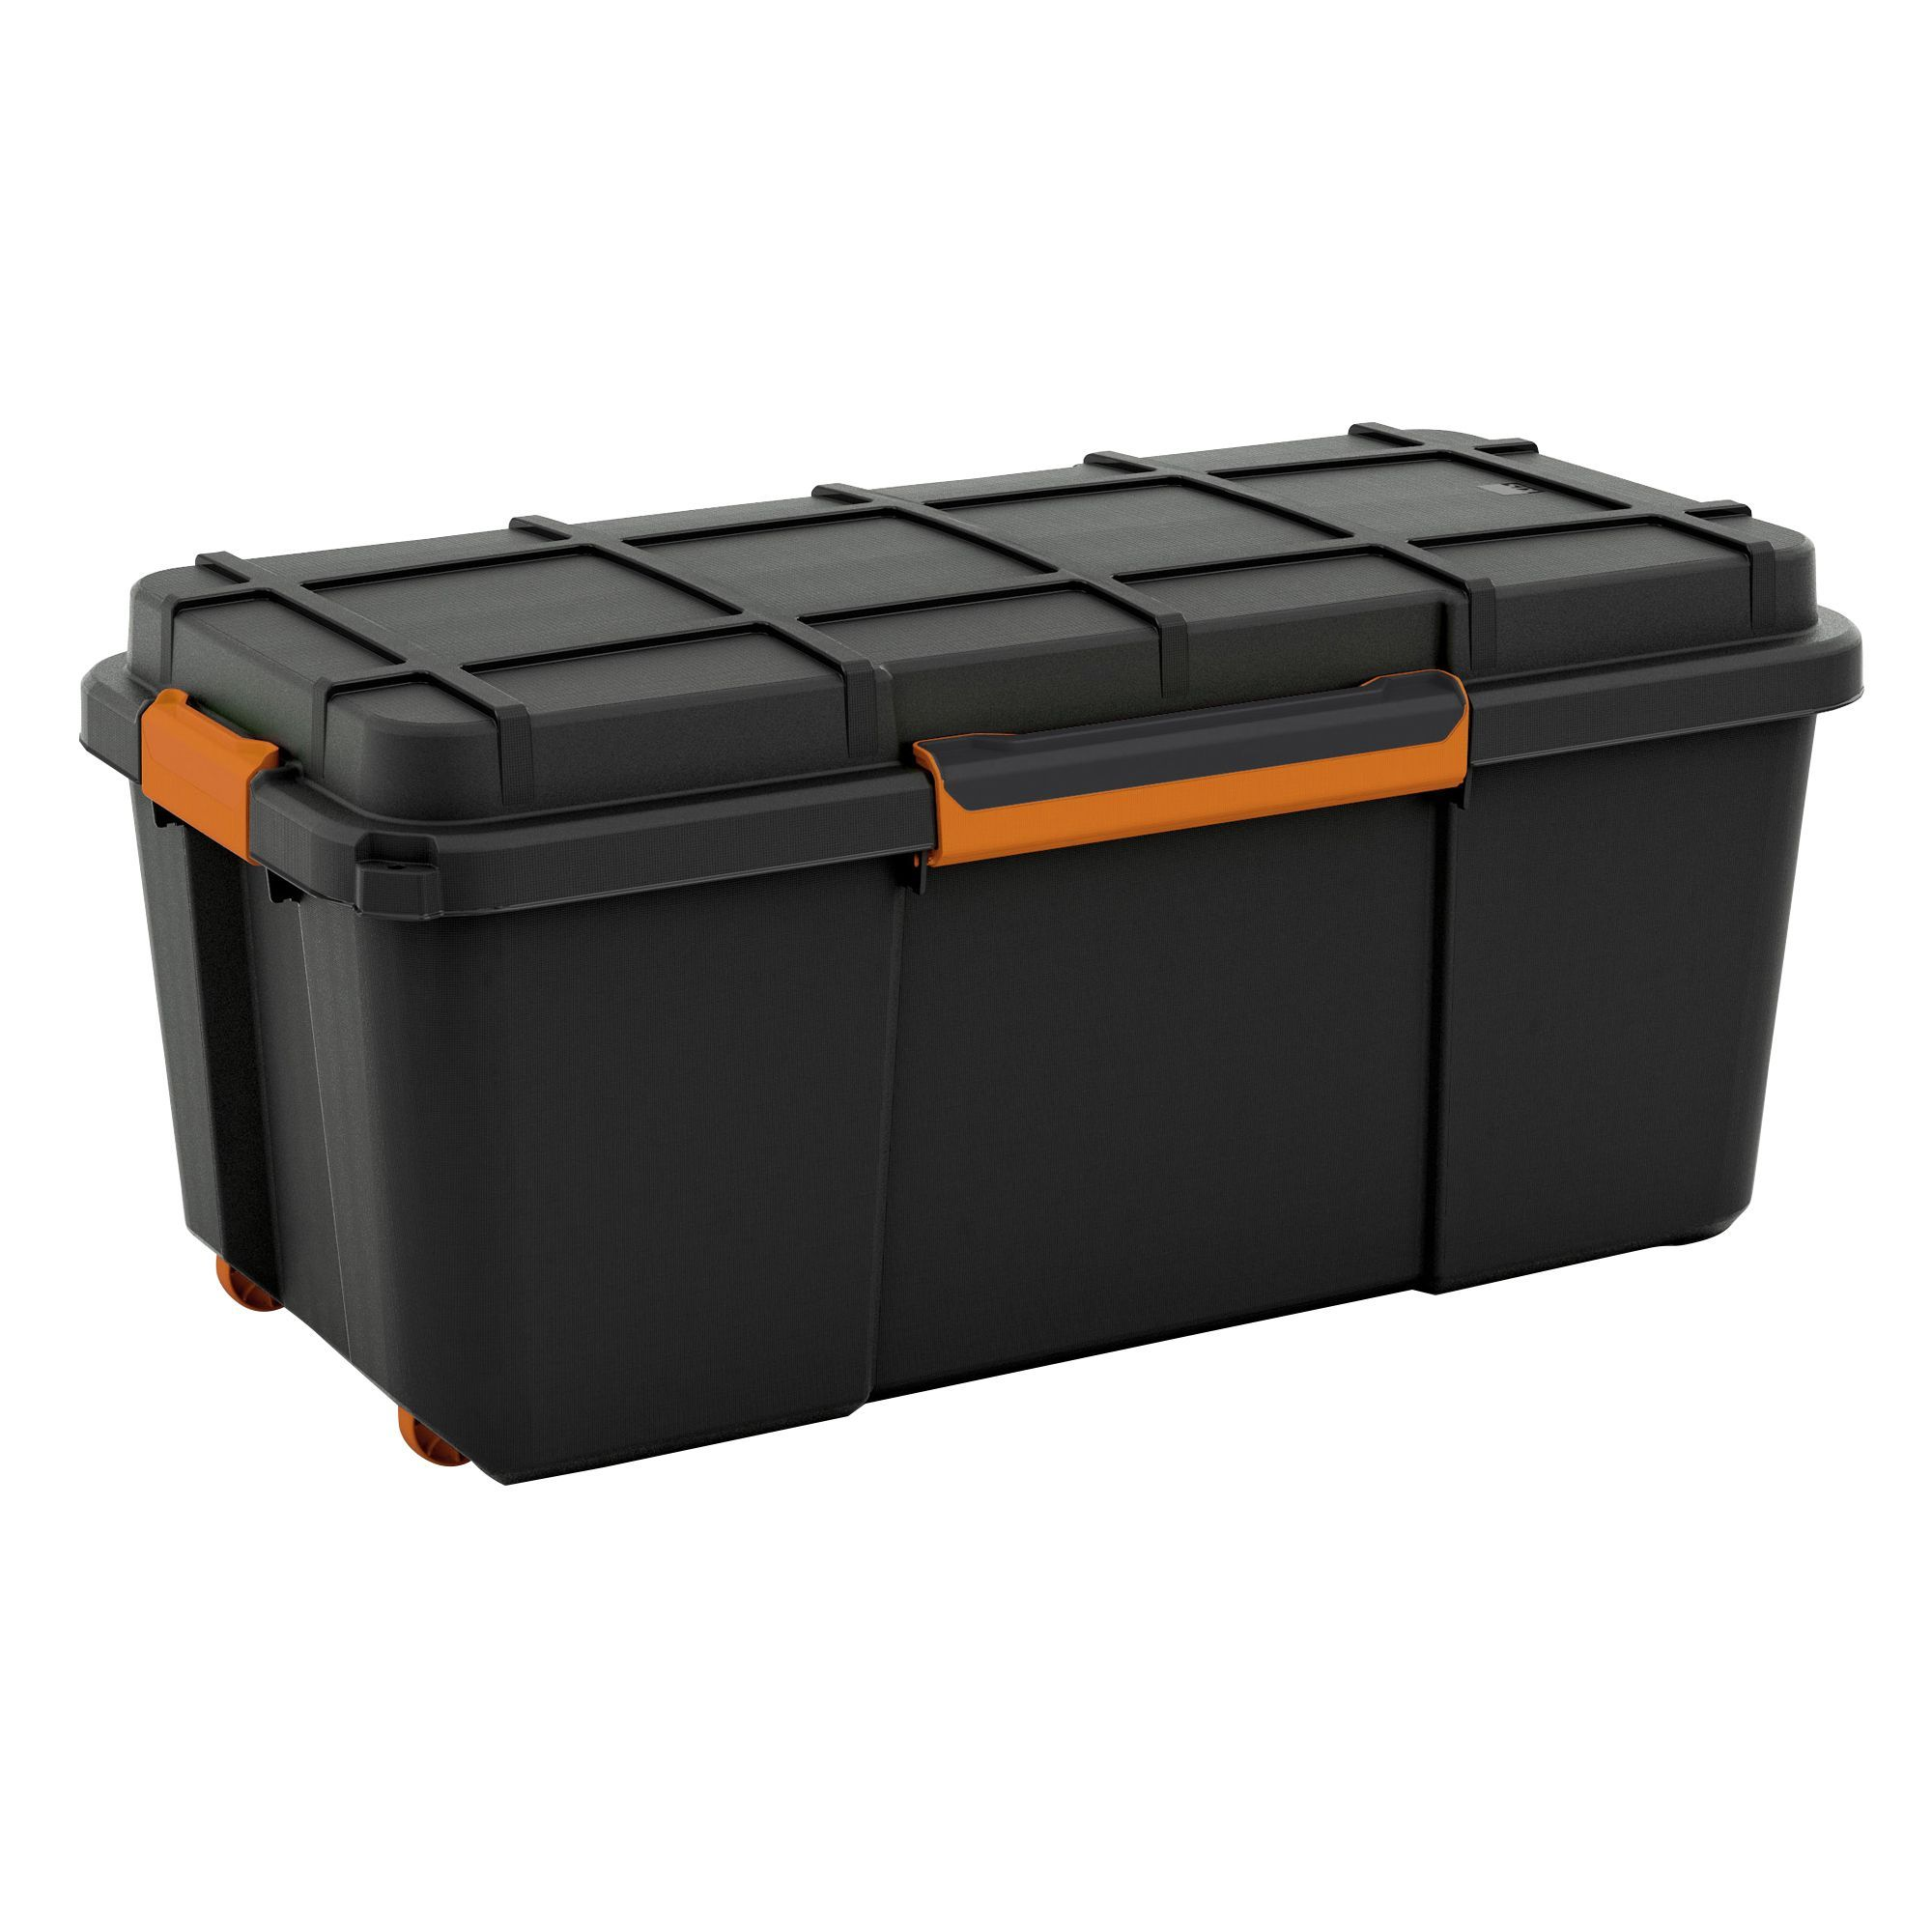 Form Flexi store Black Large 74L Plastic Waterproof storage box